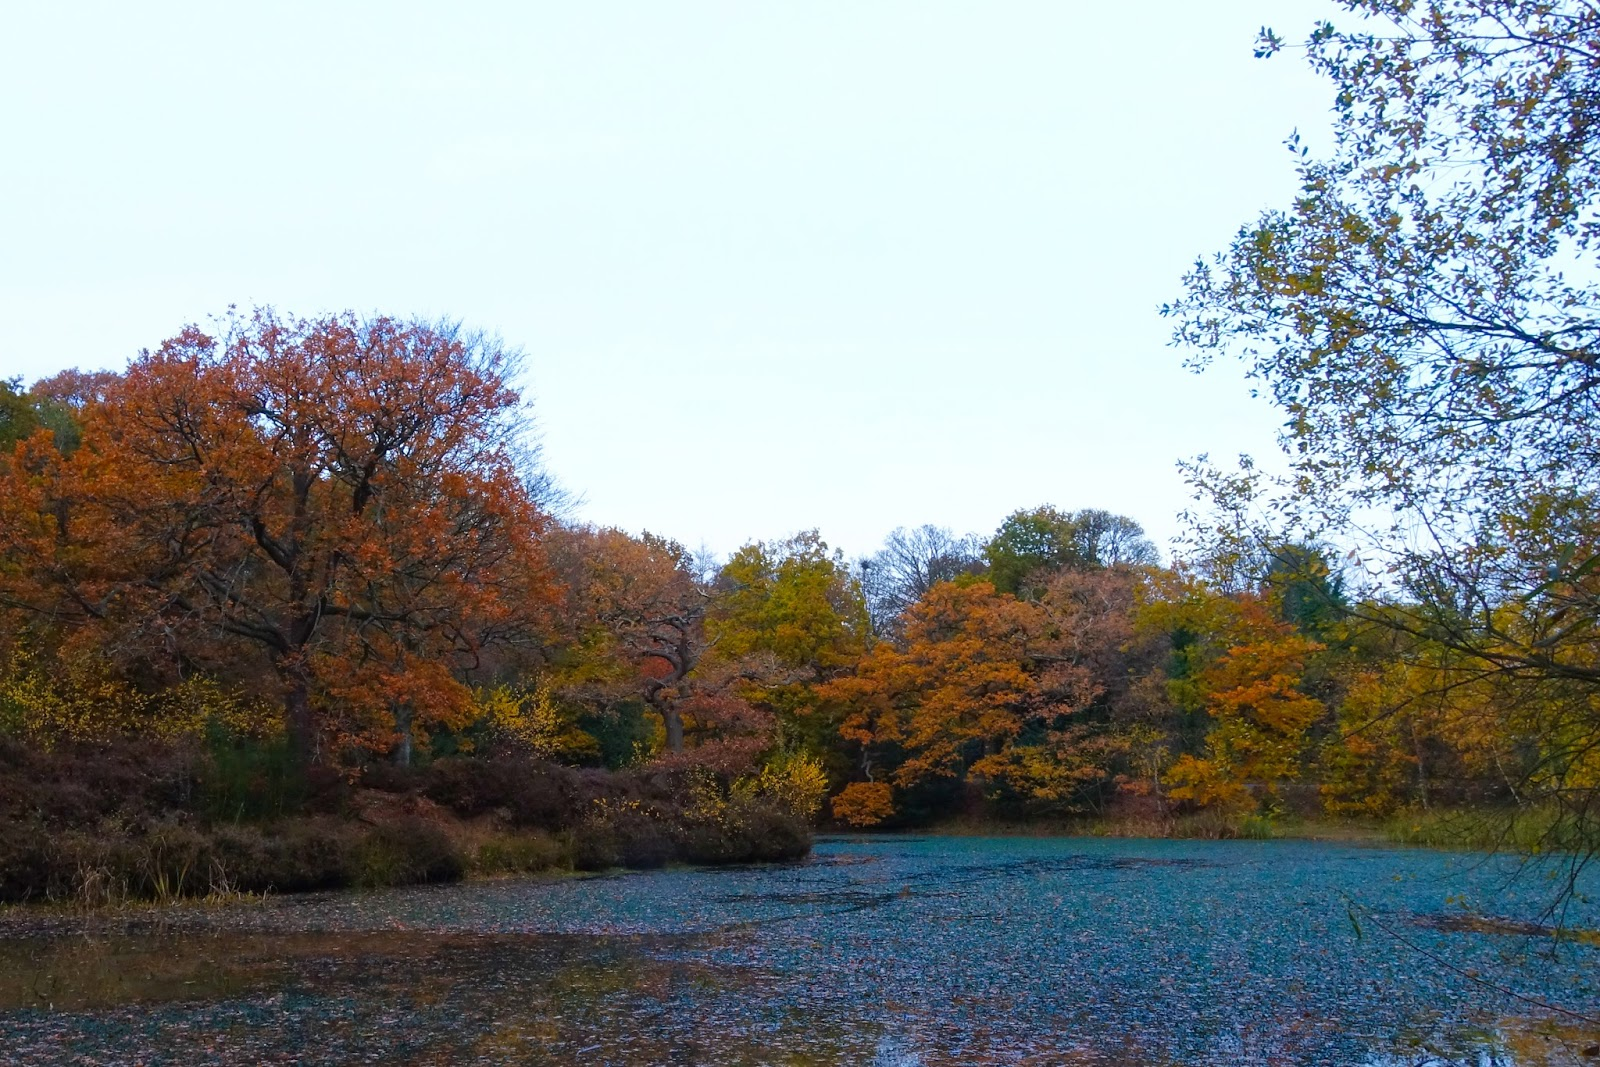 A lake in the foreground and autumnal trees behind it